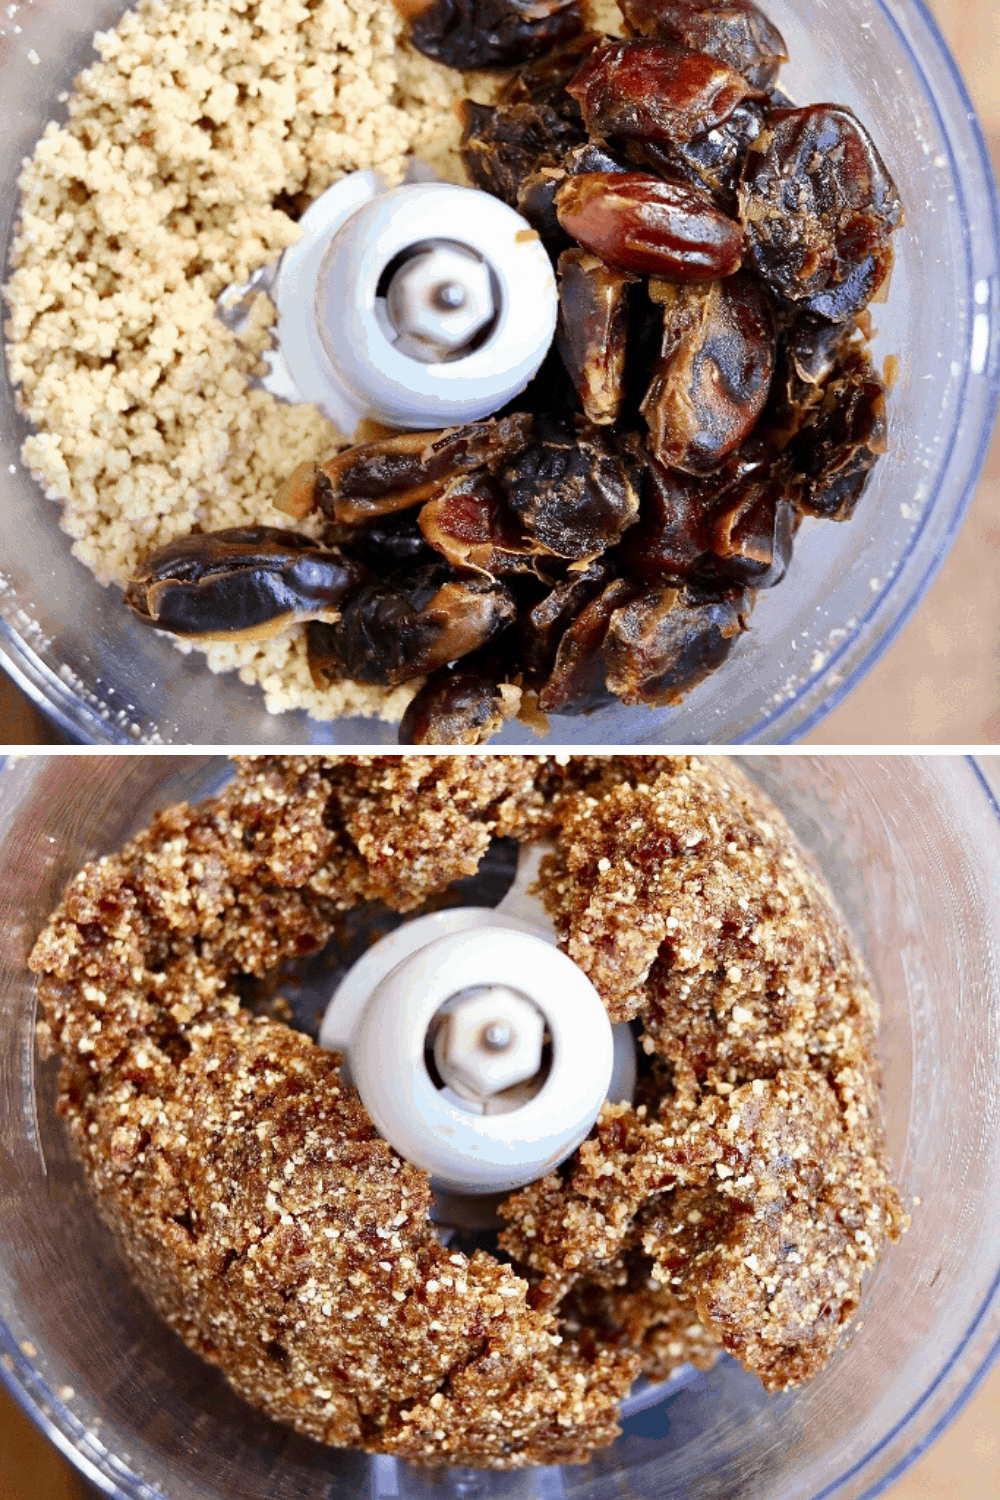 dates being added to nuts in the food processor